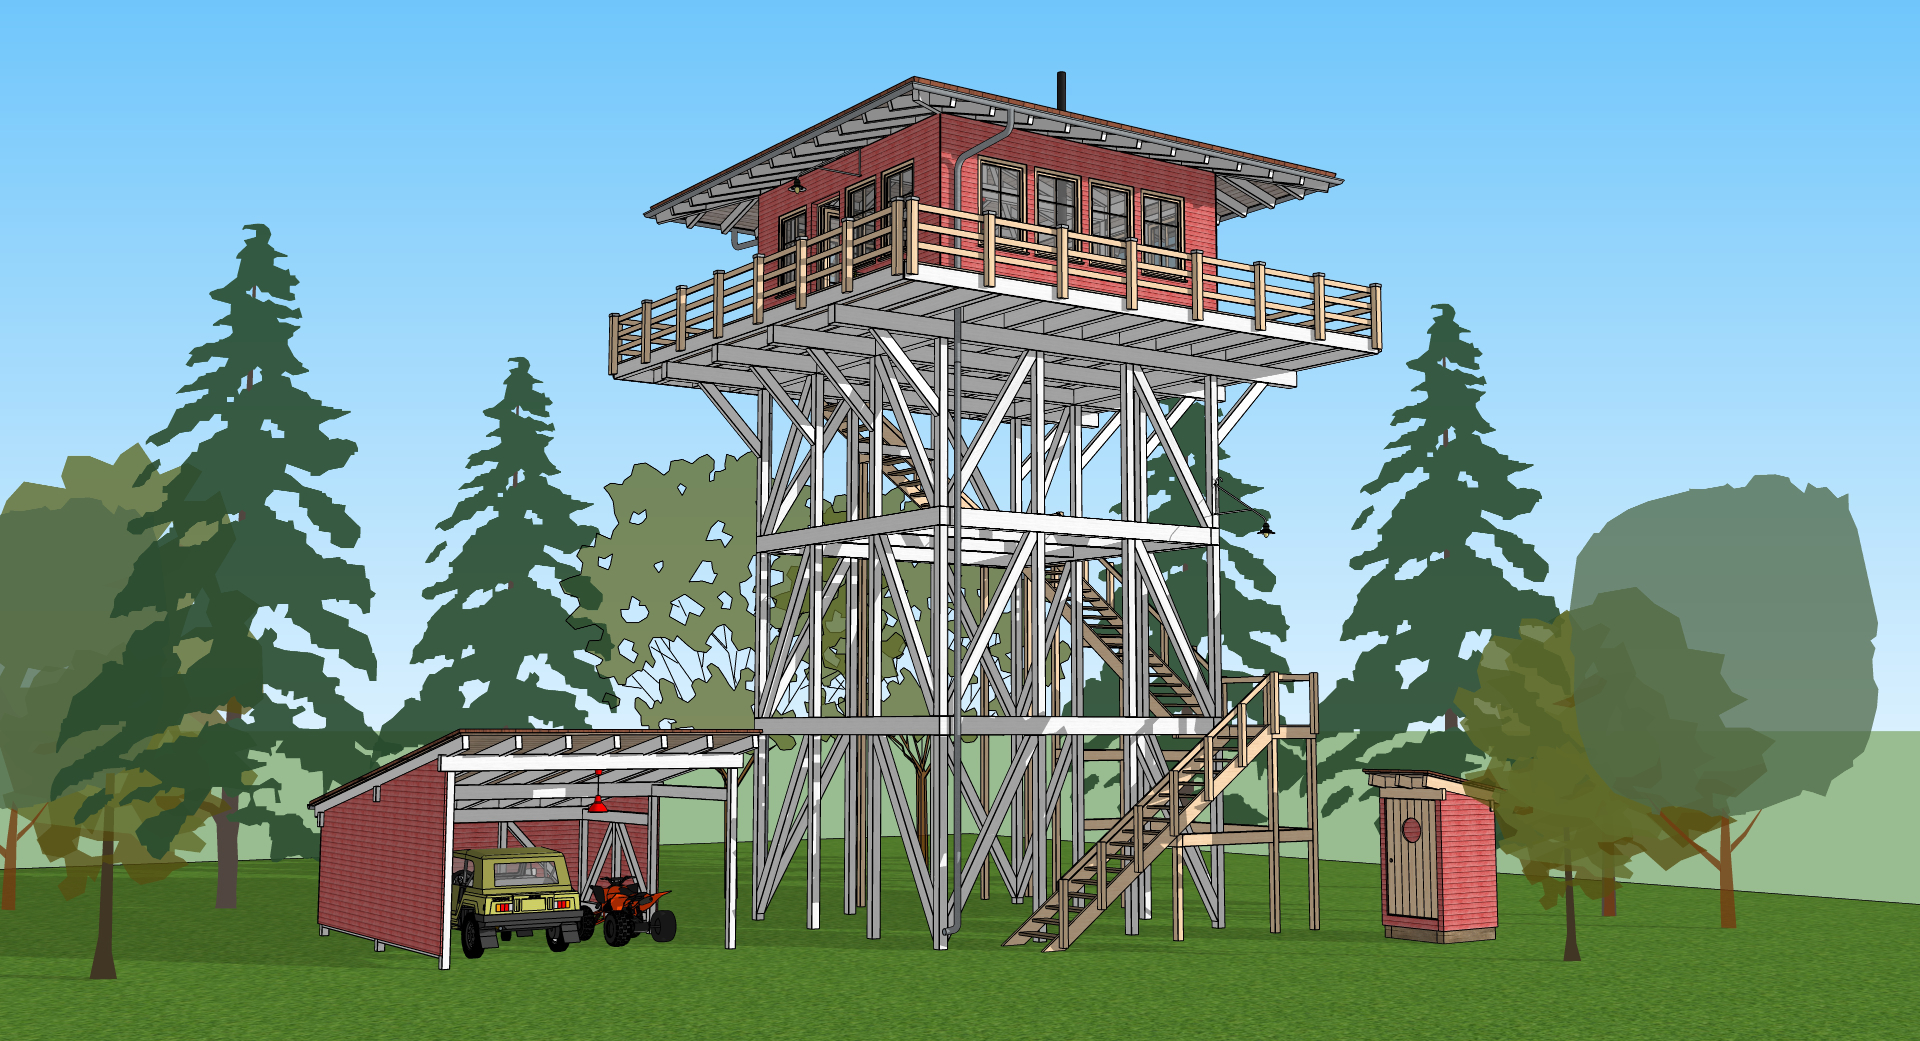 Firewatchtower Modeling with SketchUp, Rendering with Lumion  Just